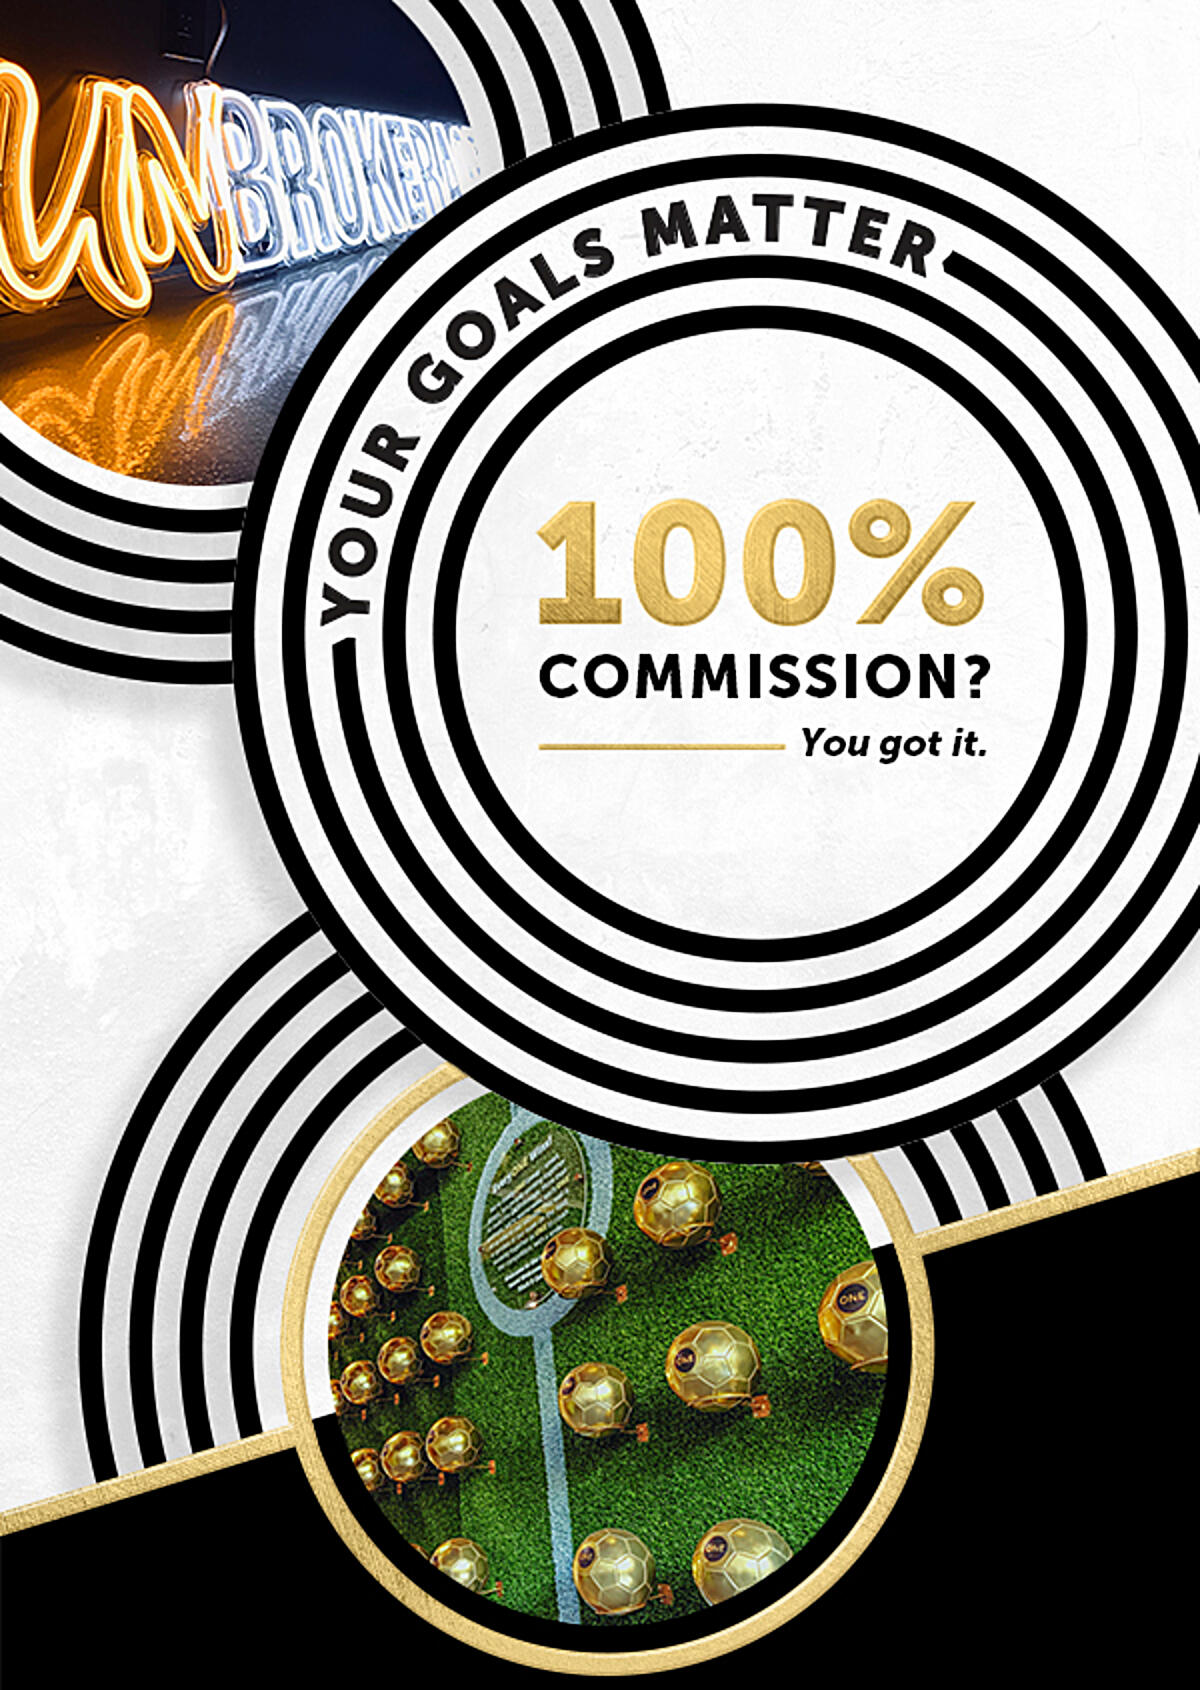 100% Commision? You got it.